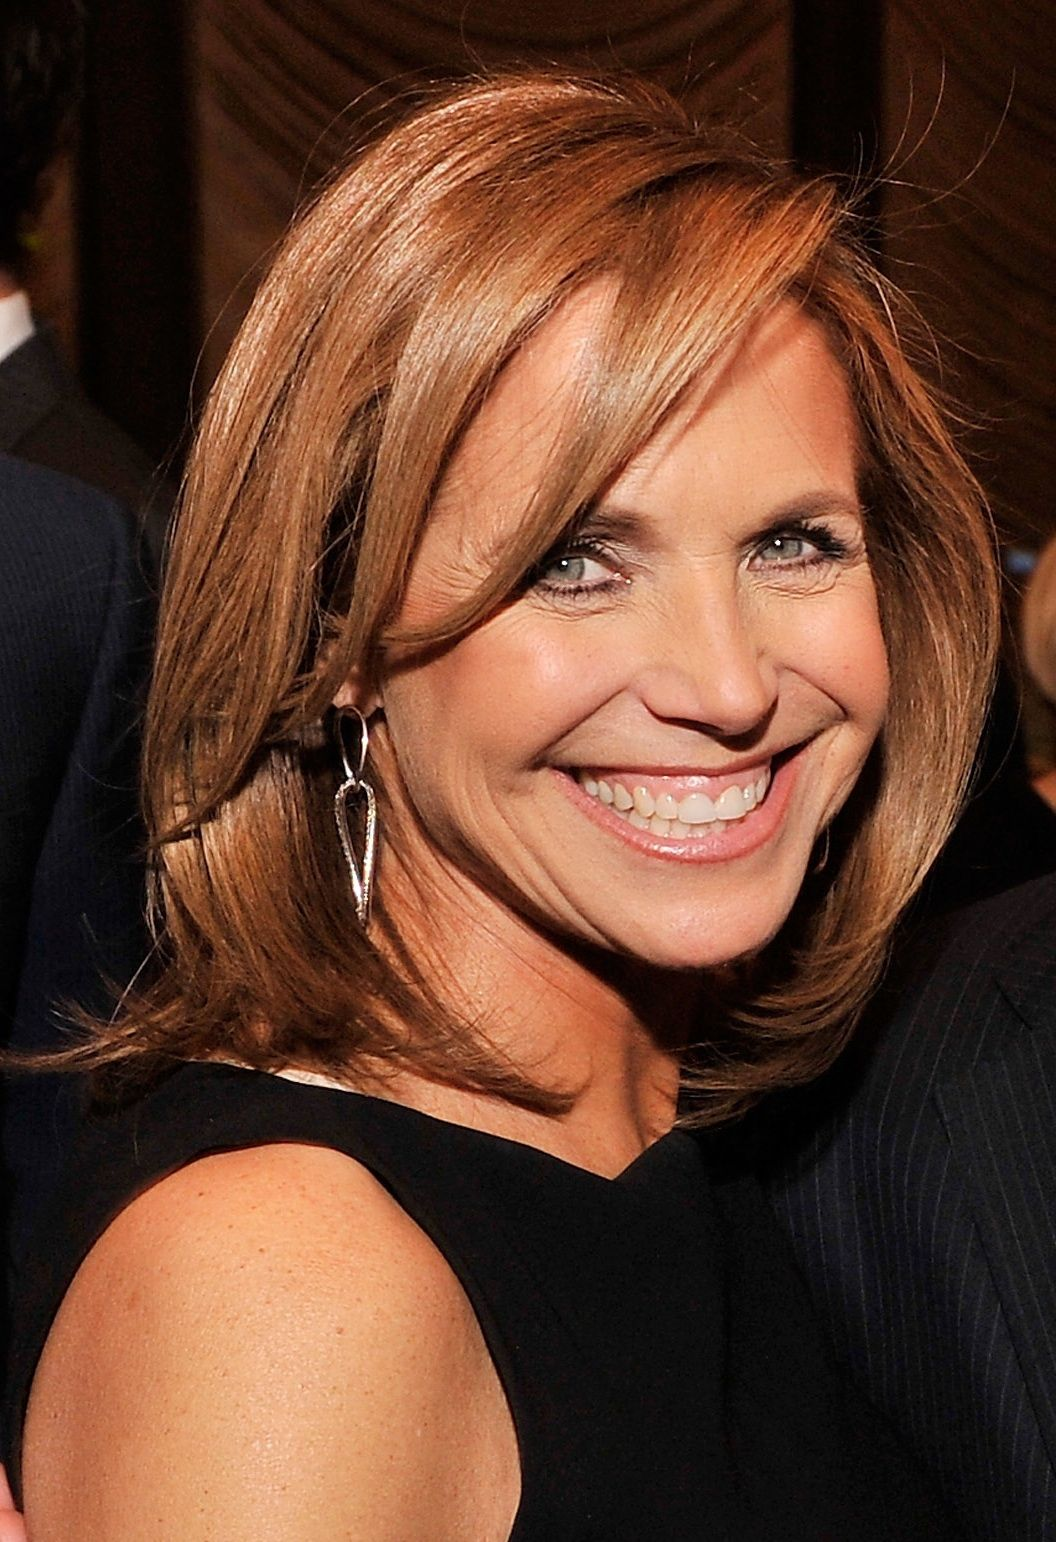 19 Clic Medium Haircuts For Women Katie Couric S Hair I Like The Length Of Bangs